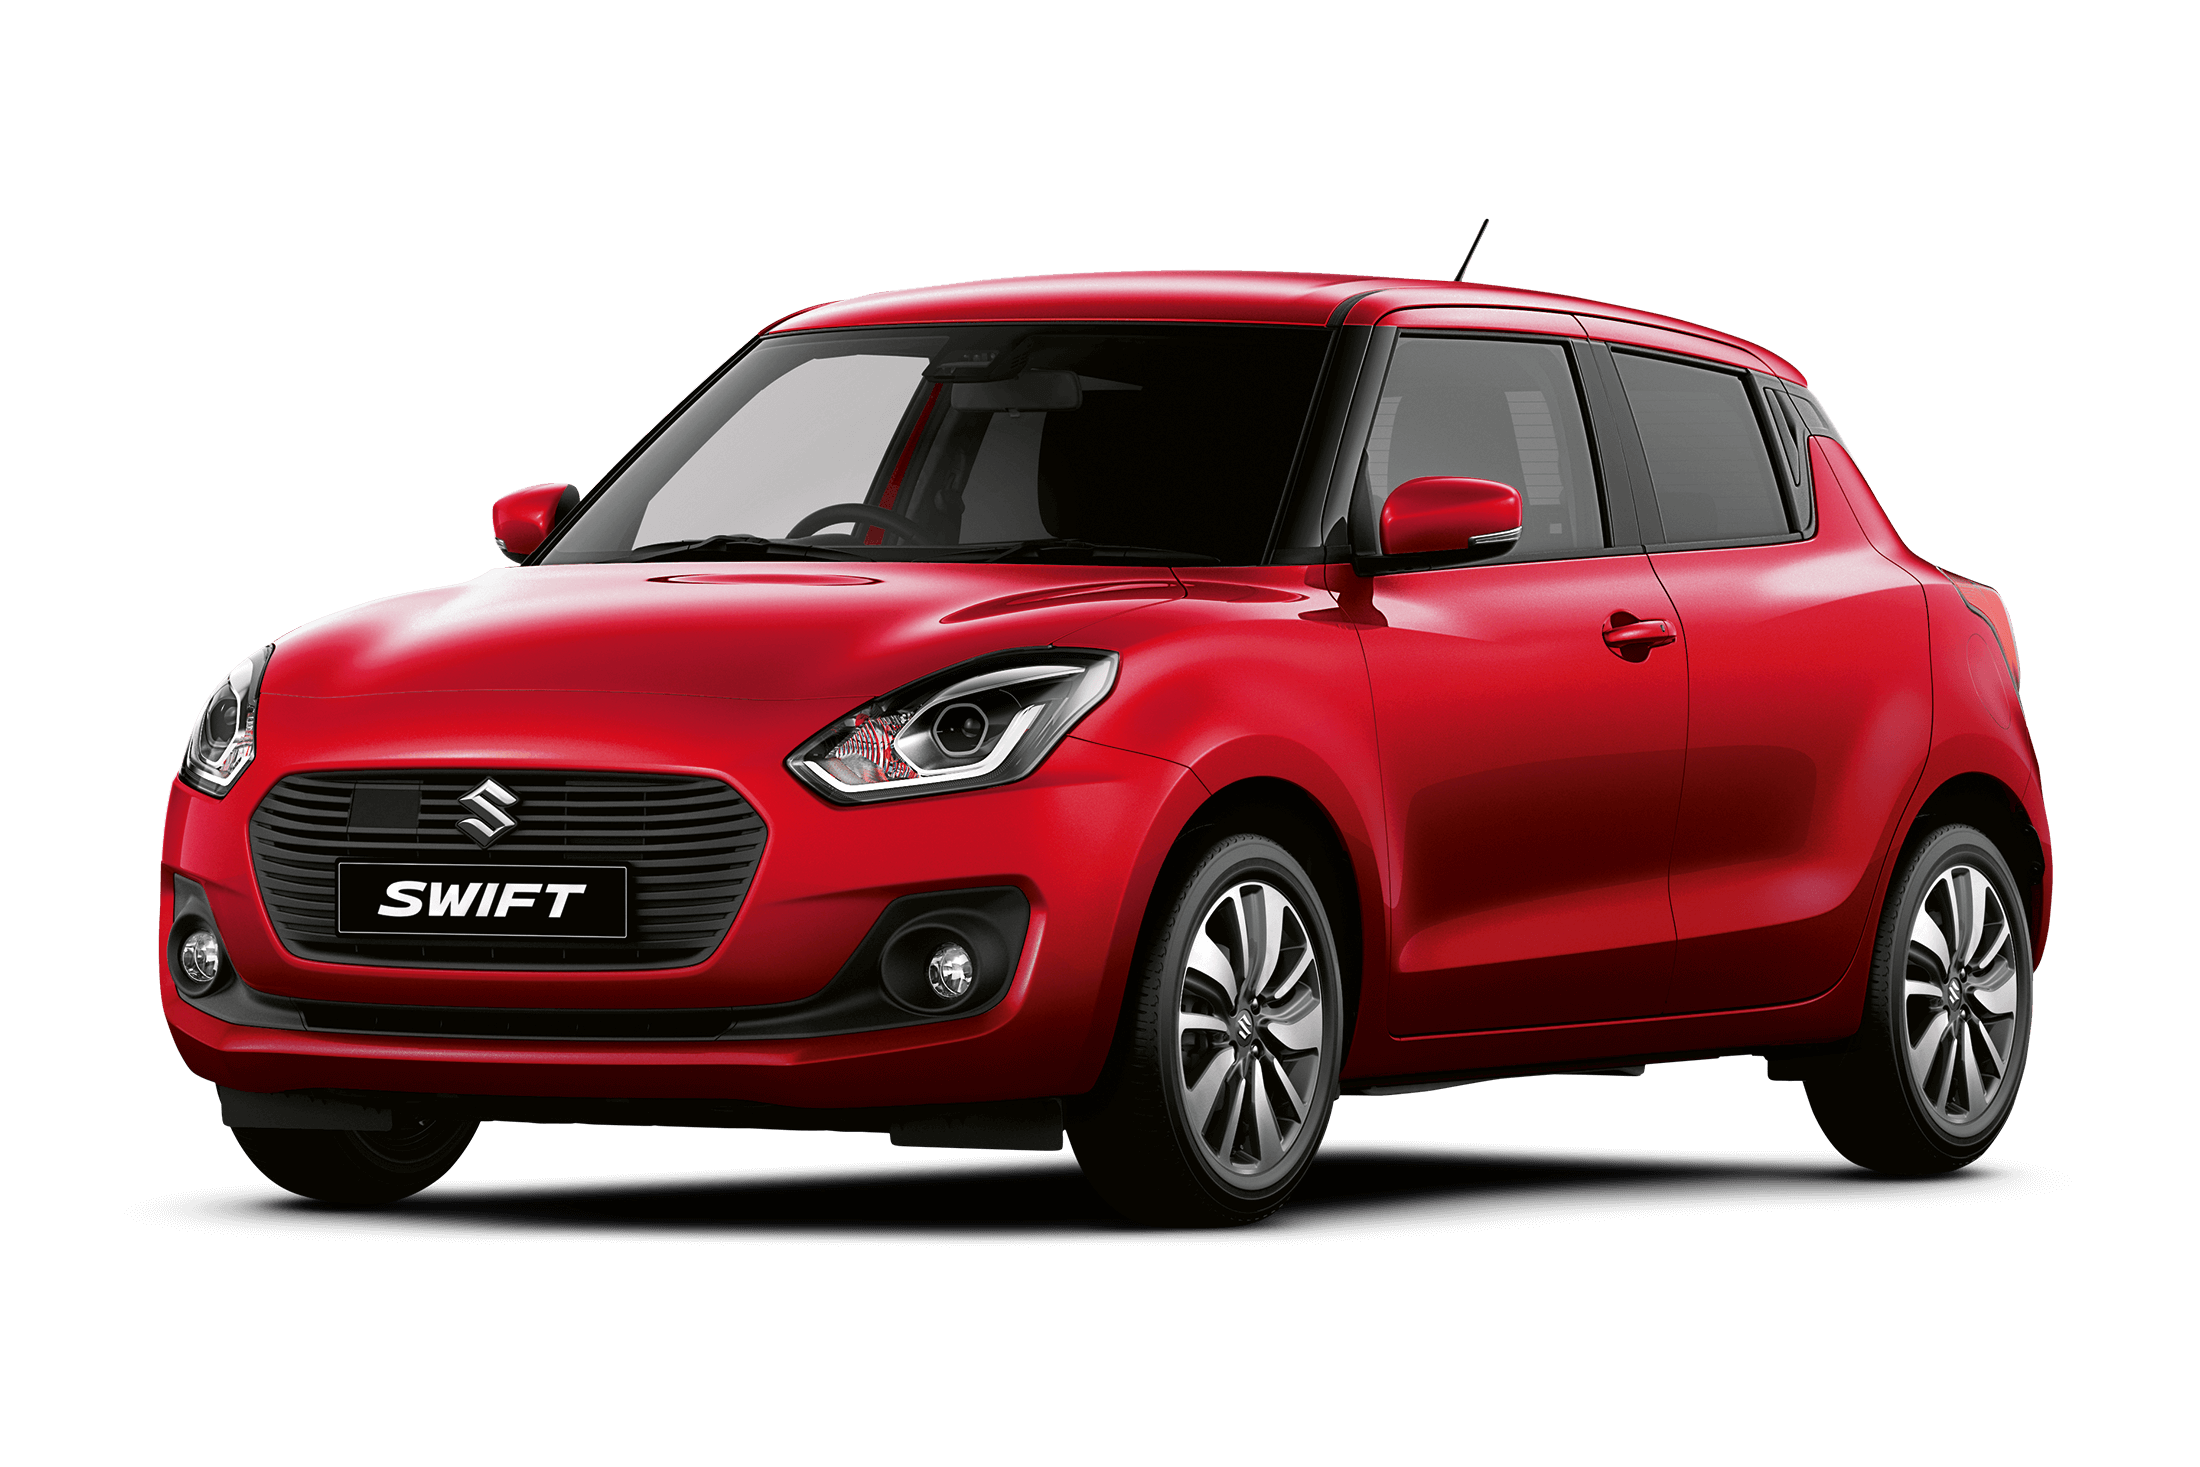 New Suzuki Swift 2017